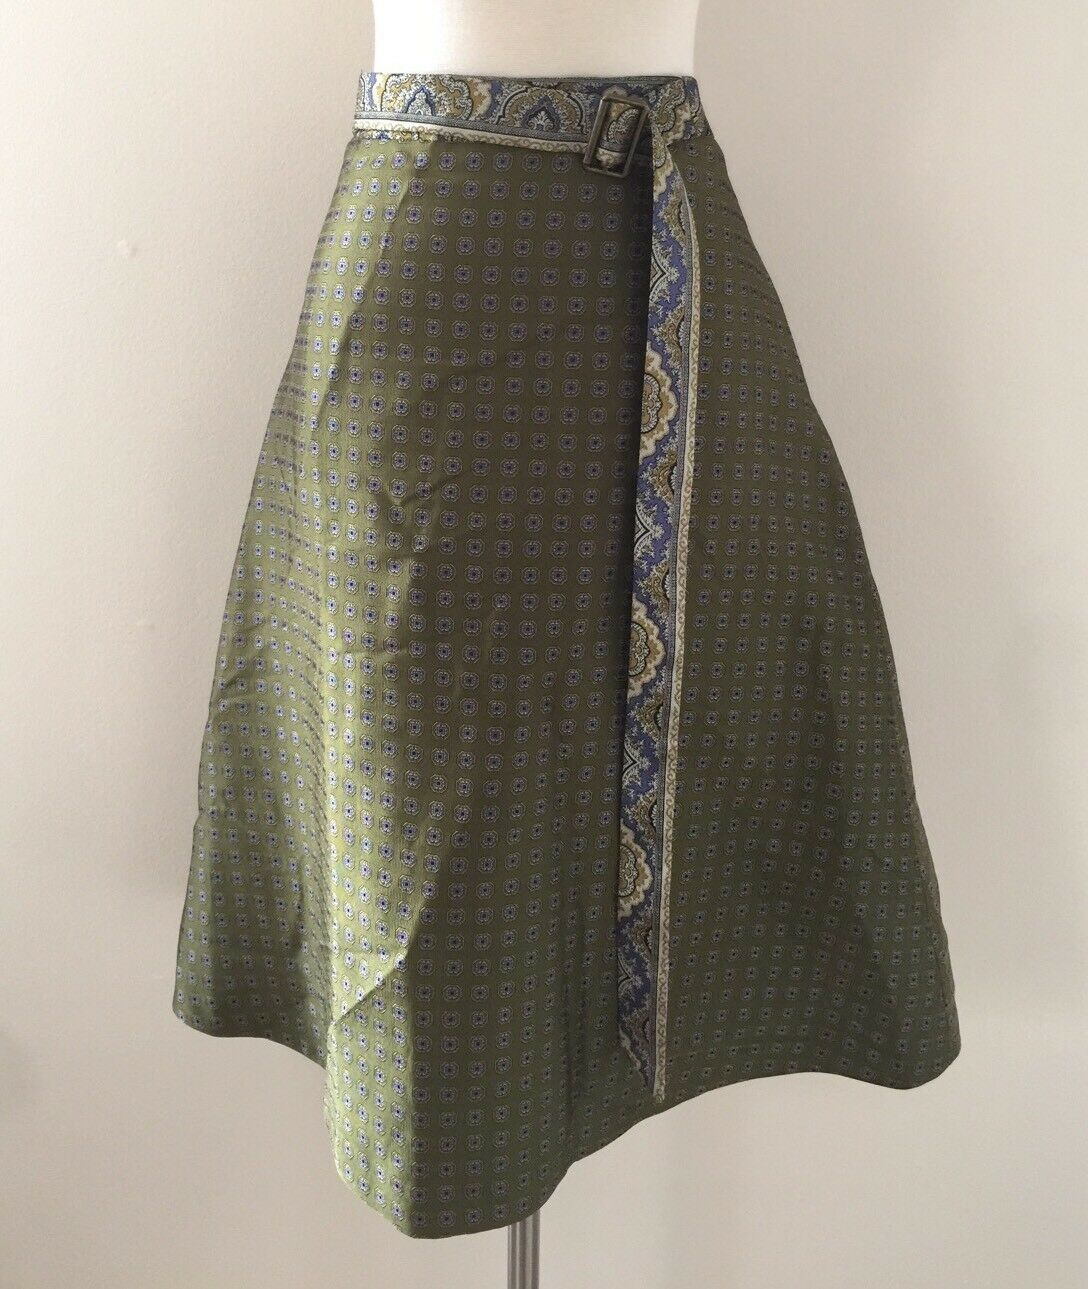 New Jcrew Women's Olive Green Paisley Belted A Line Skirt Size 6 RARE